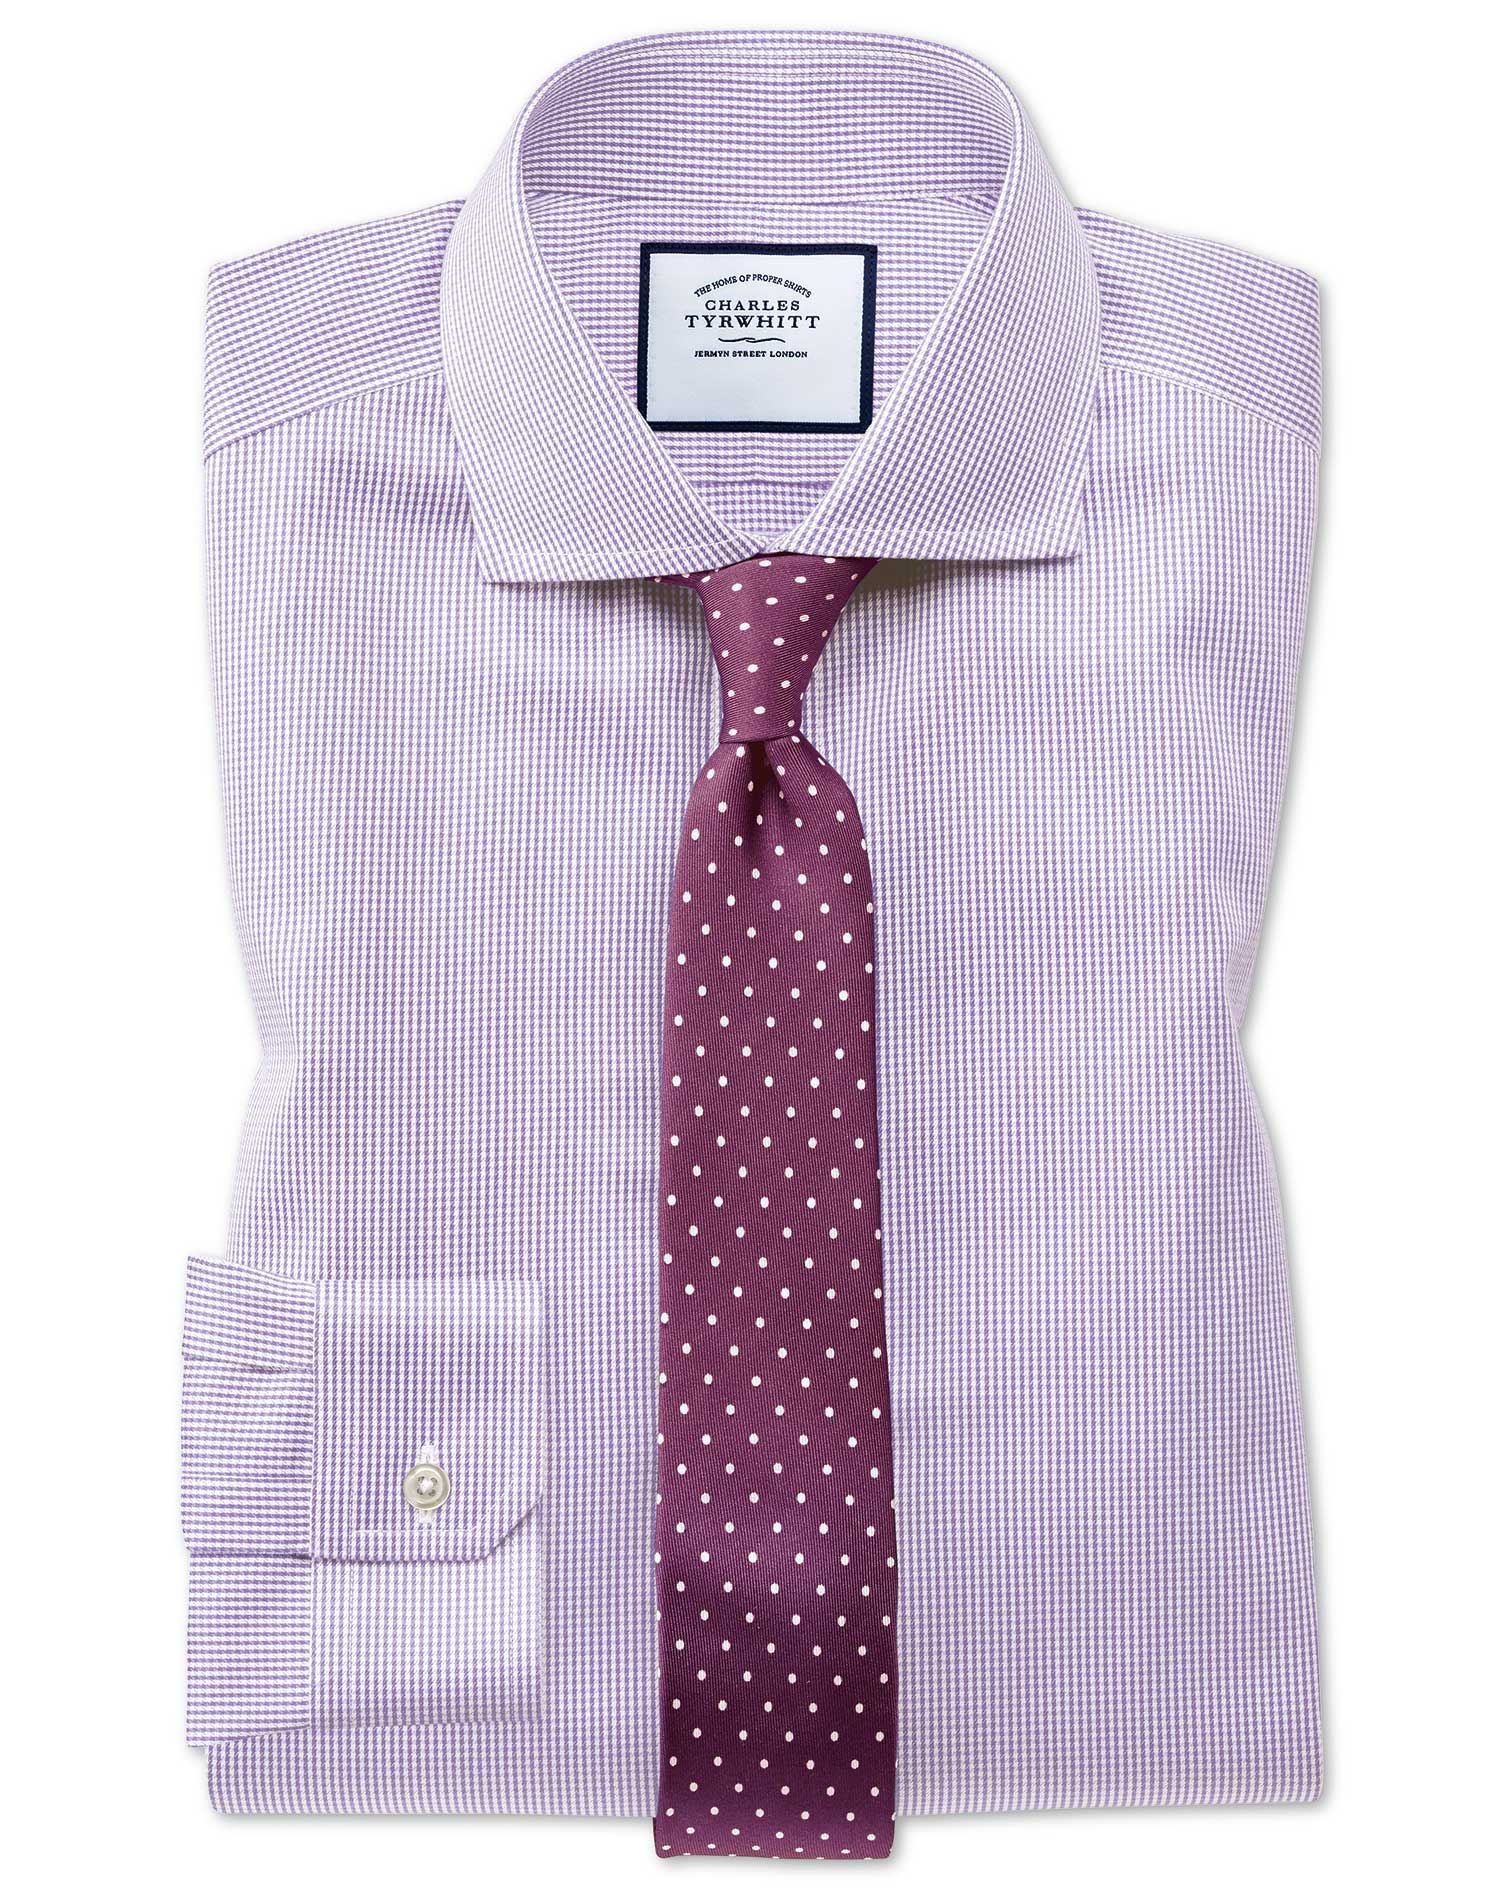 Super Slim Fit Cutaway Non-Iron Puppytooth Lilac Cotton Formal Shirt Single Cuff Size 14/33 by Charl